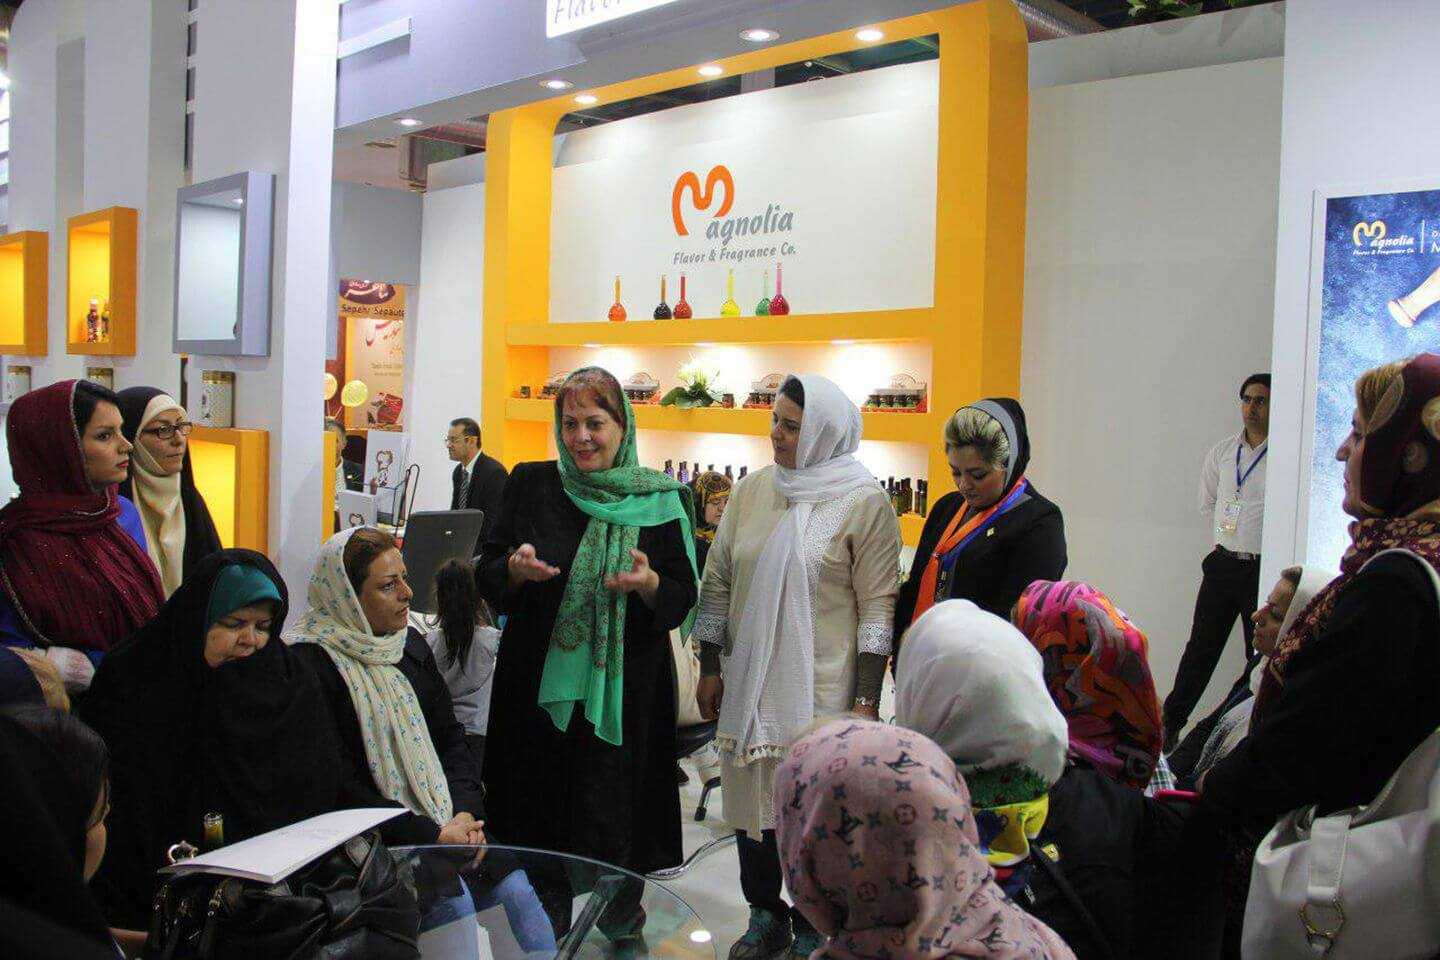 Magnolia presence in 24th Iran international Agrofood exhibition in Tehran